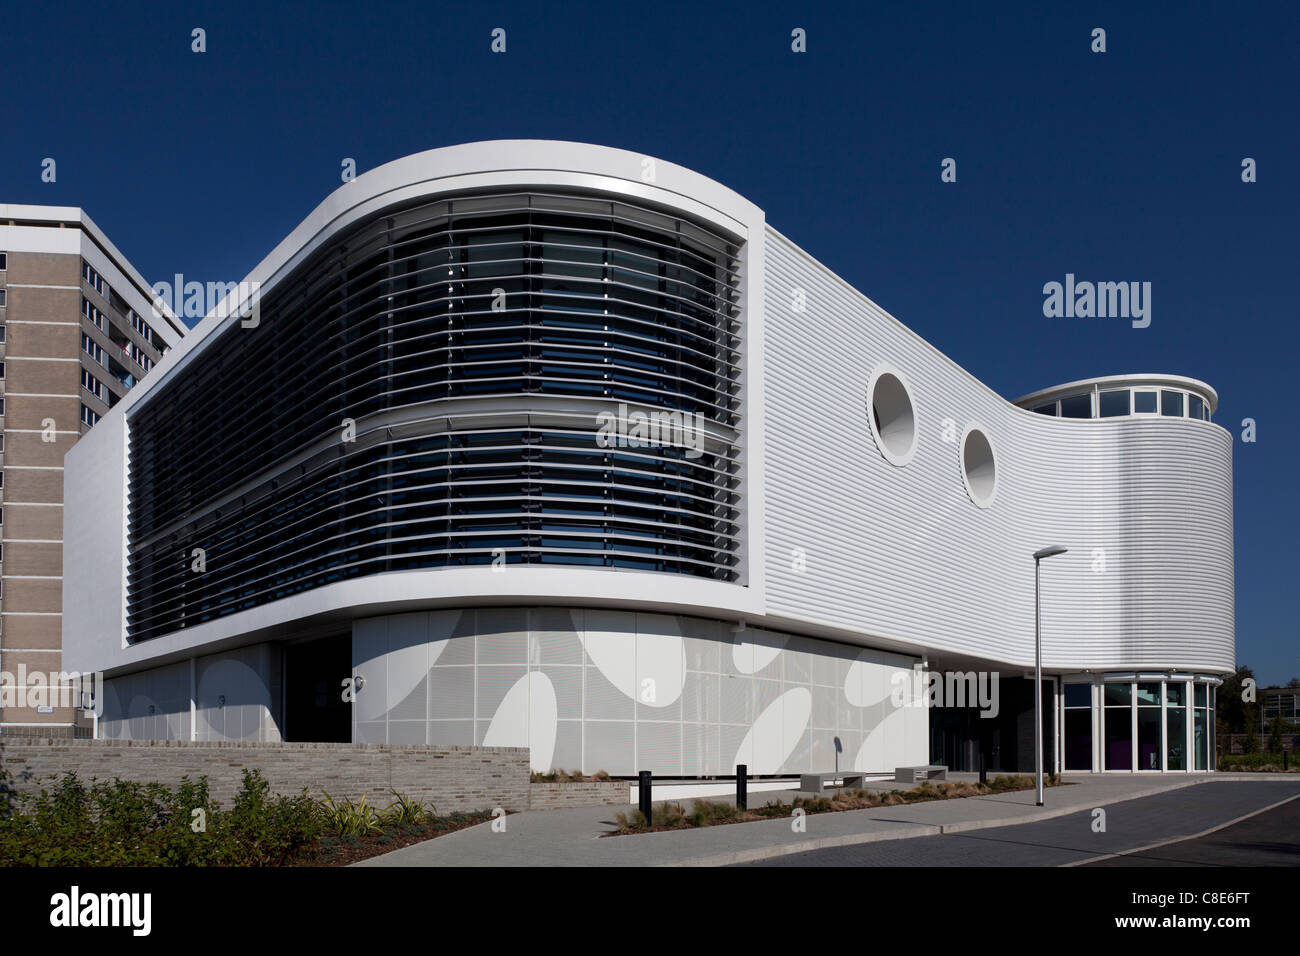 The curved and louvered, white exterior of the Eastpoint Centre in Southampton. - Stock Image